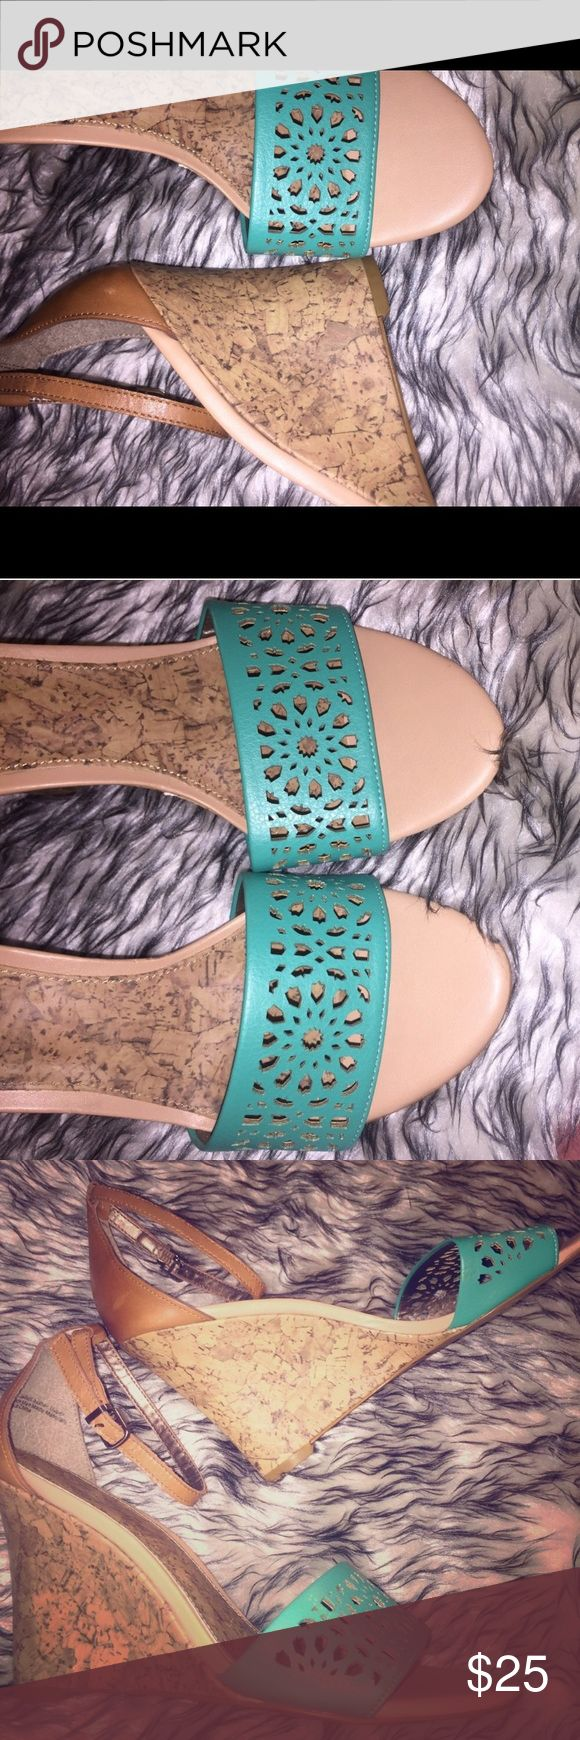 Loft wedges Chic Ann Taylor Loft wedge sandals. EUC. Turquoise and tan with a scalloped design and a modest wedge heel. Size 7m. Perfect for date night or paired with jeans.  Really feminine!    Tags: work wear , spring , bright , teal, wedges, Anne Taylor LOFT Shoes Wedges